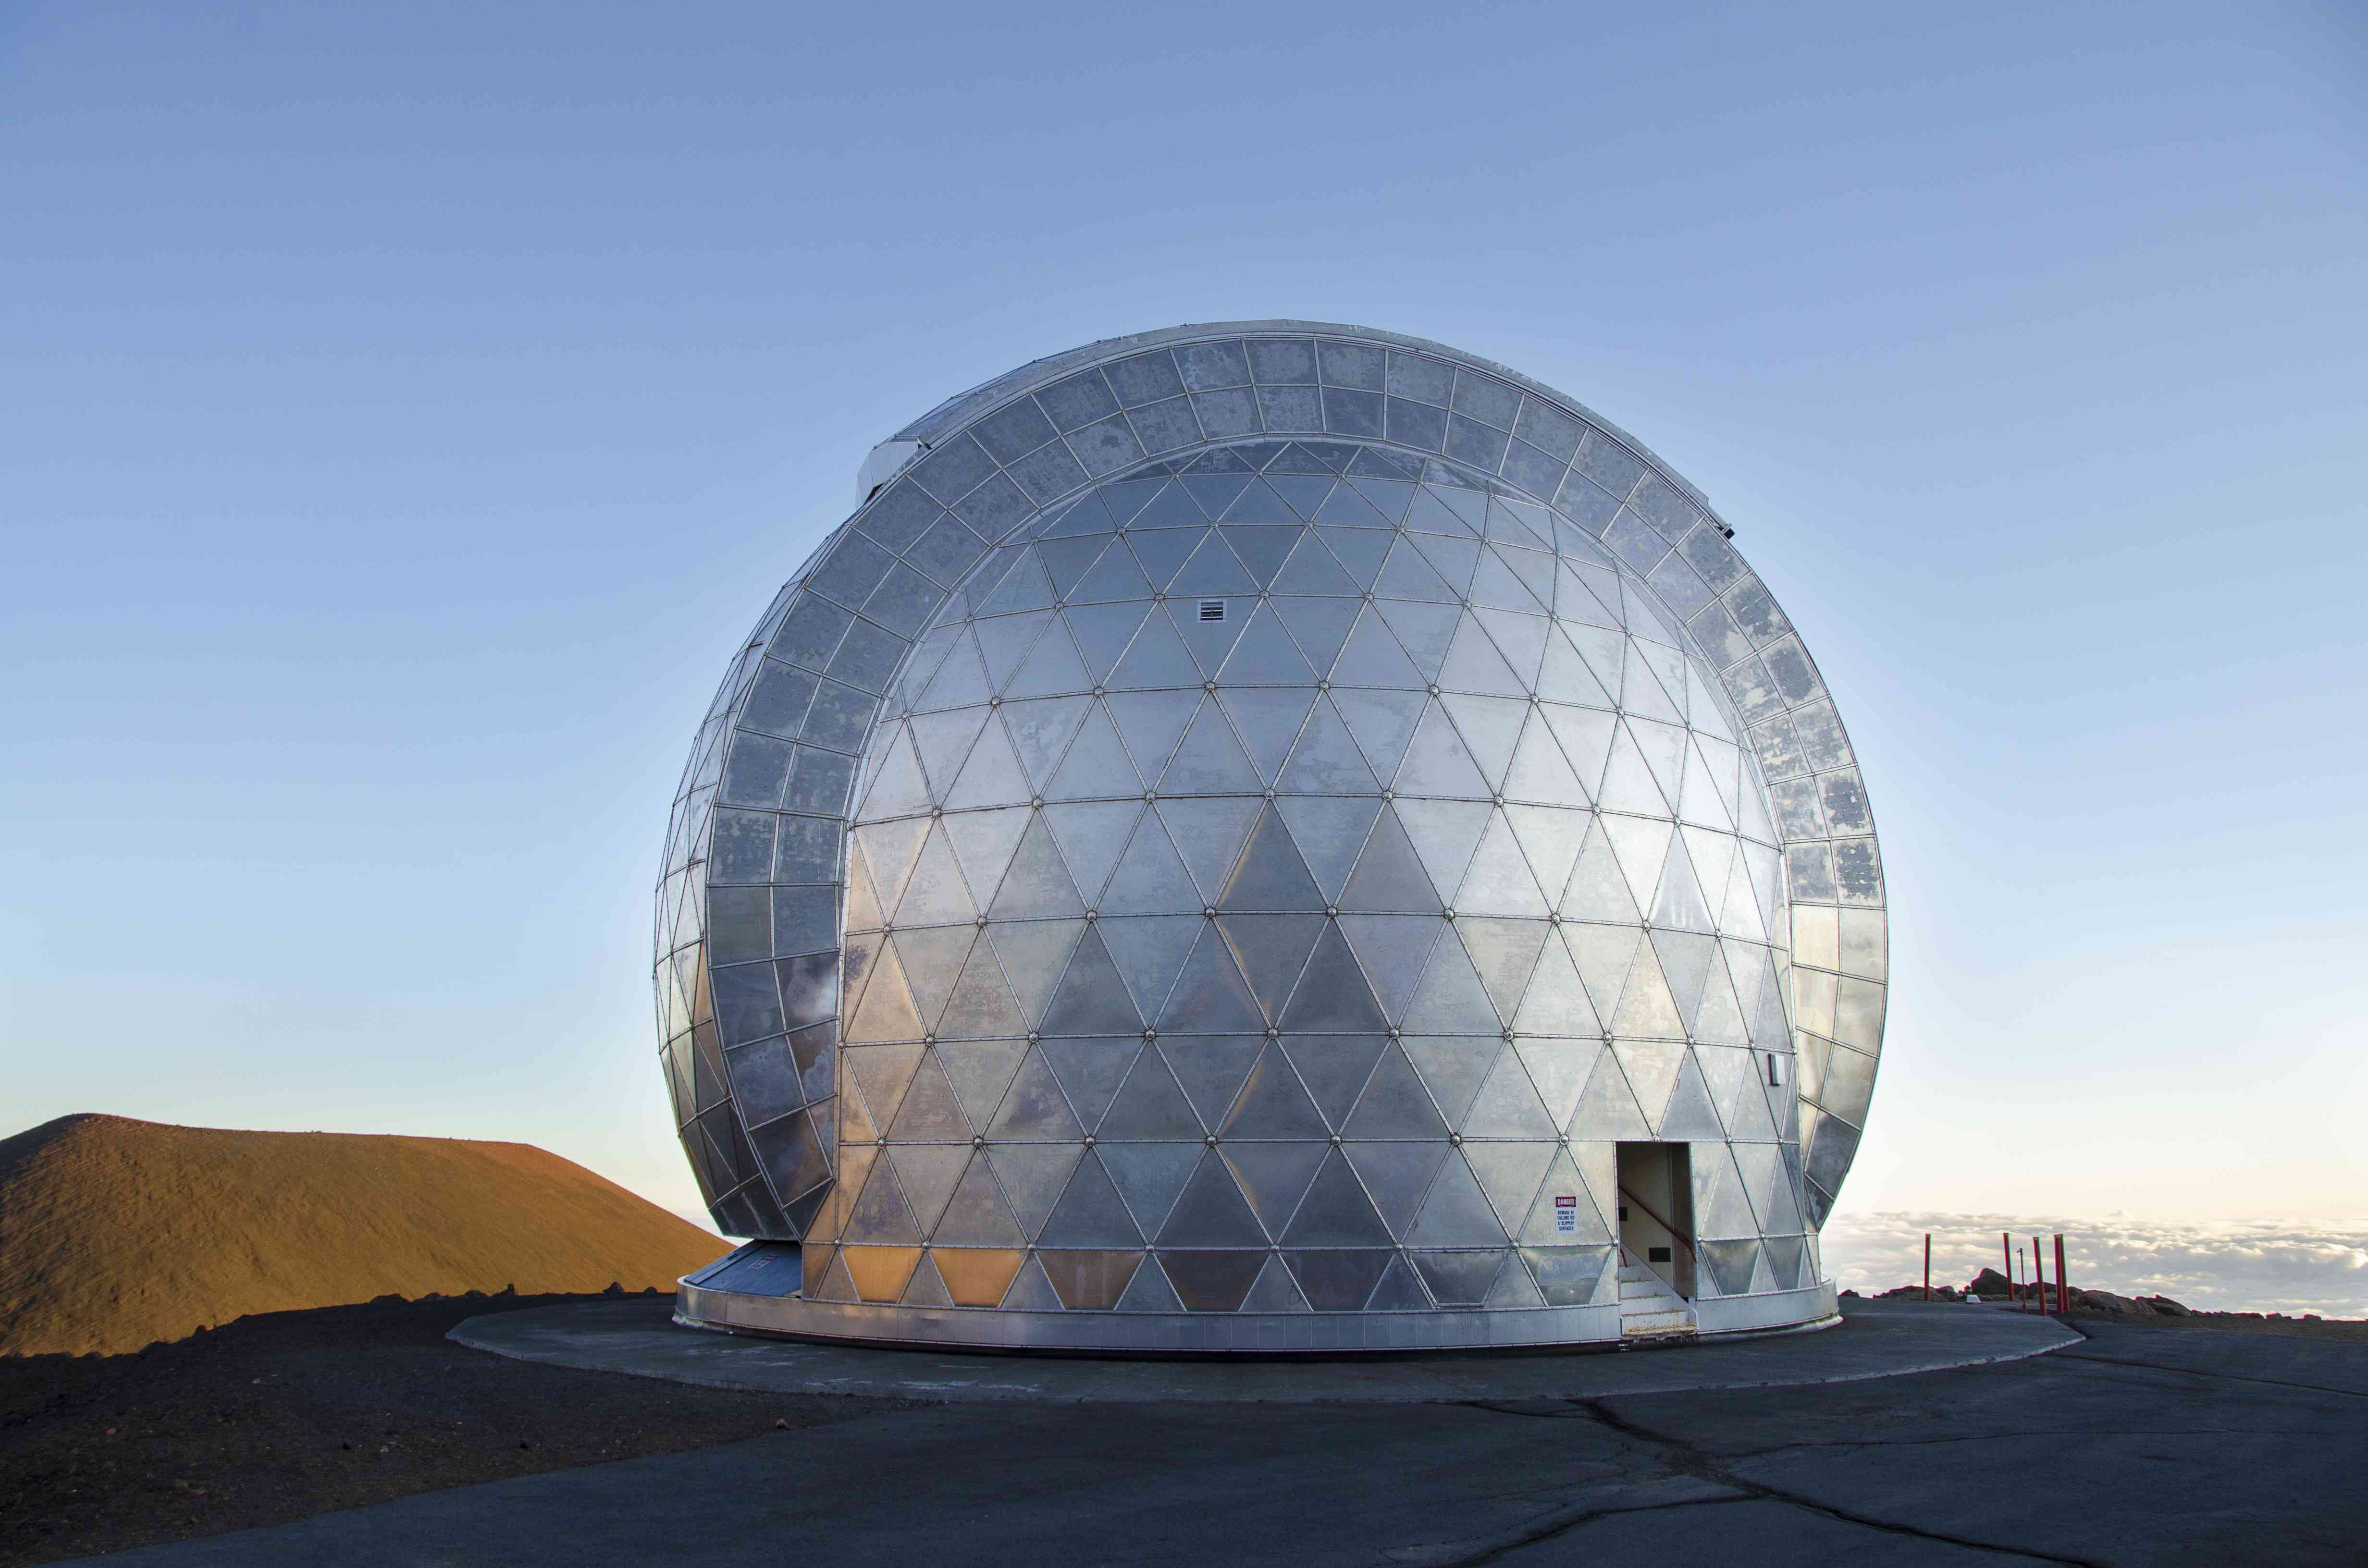 geodesic dome of Caltech Submillimeter Observatory, Mauna Kea Observatories, Hawaii